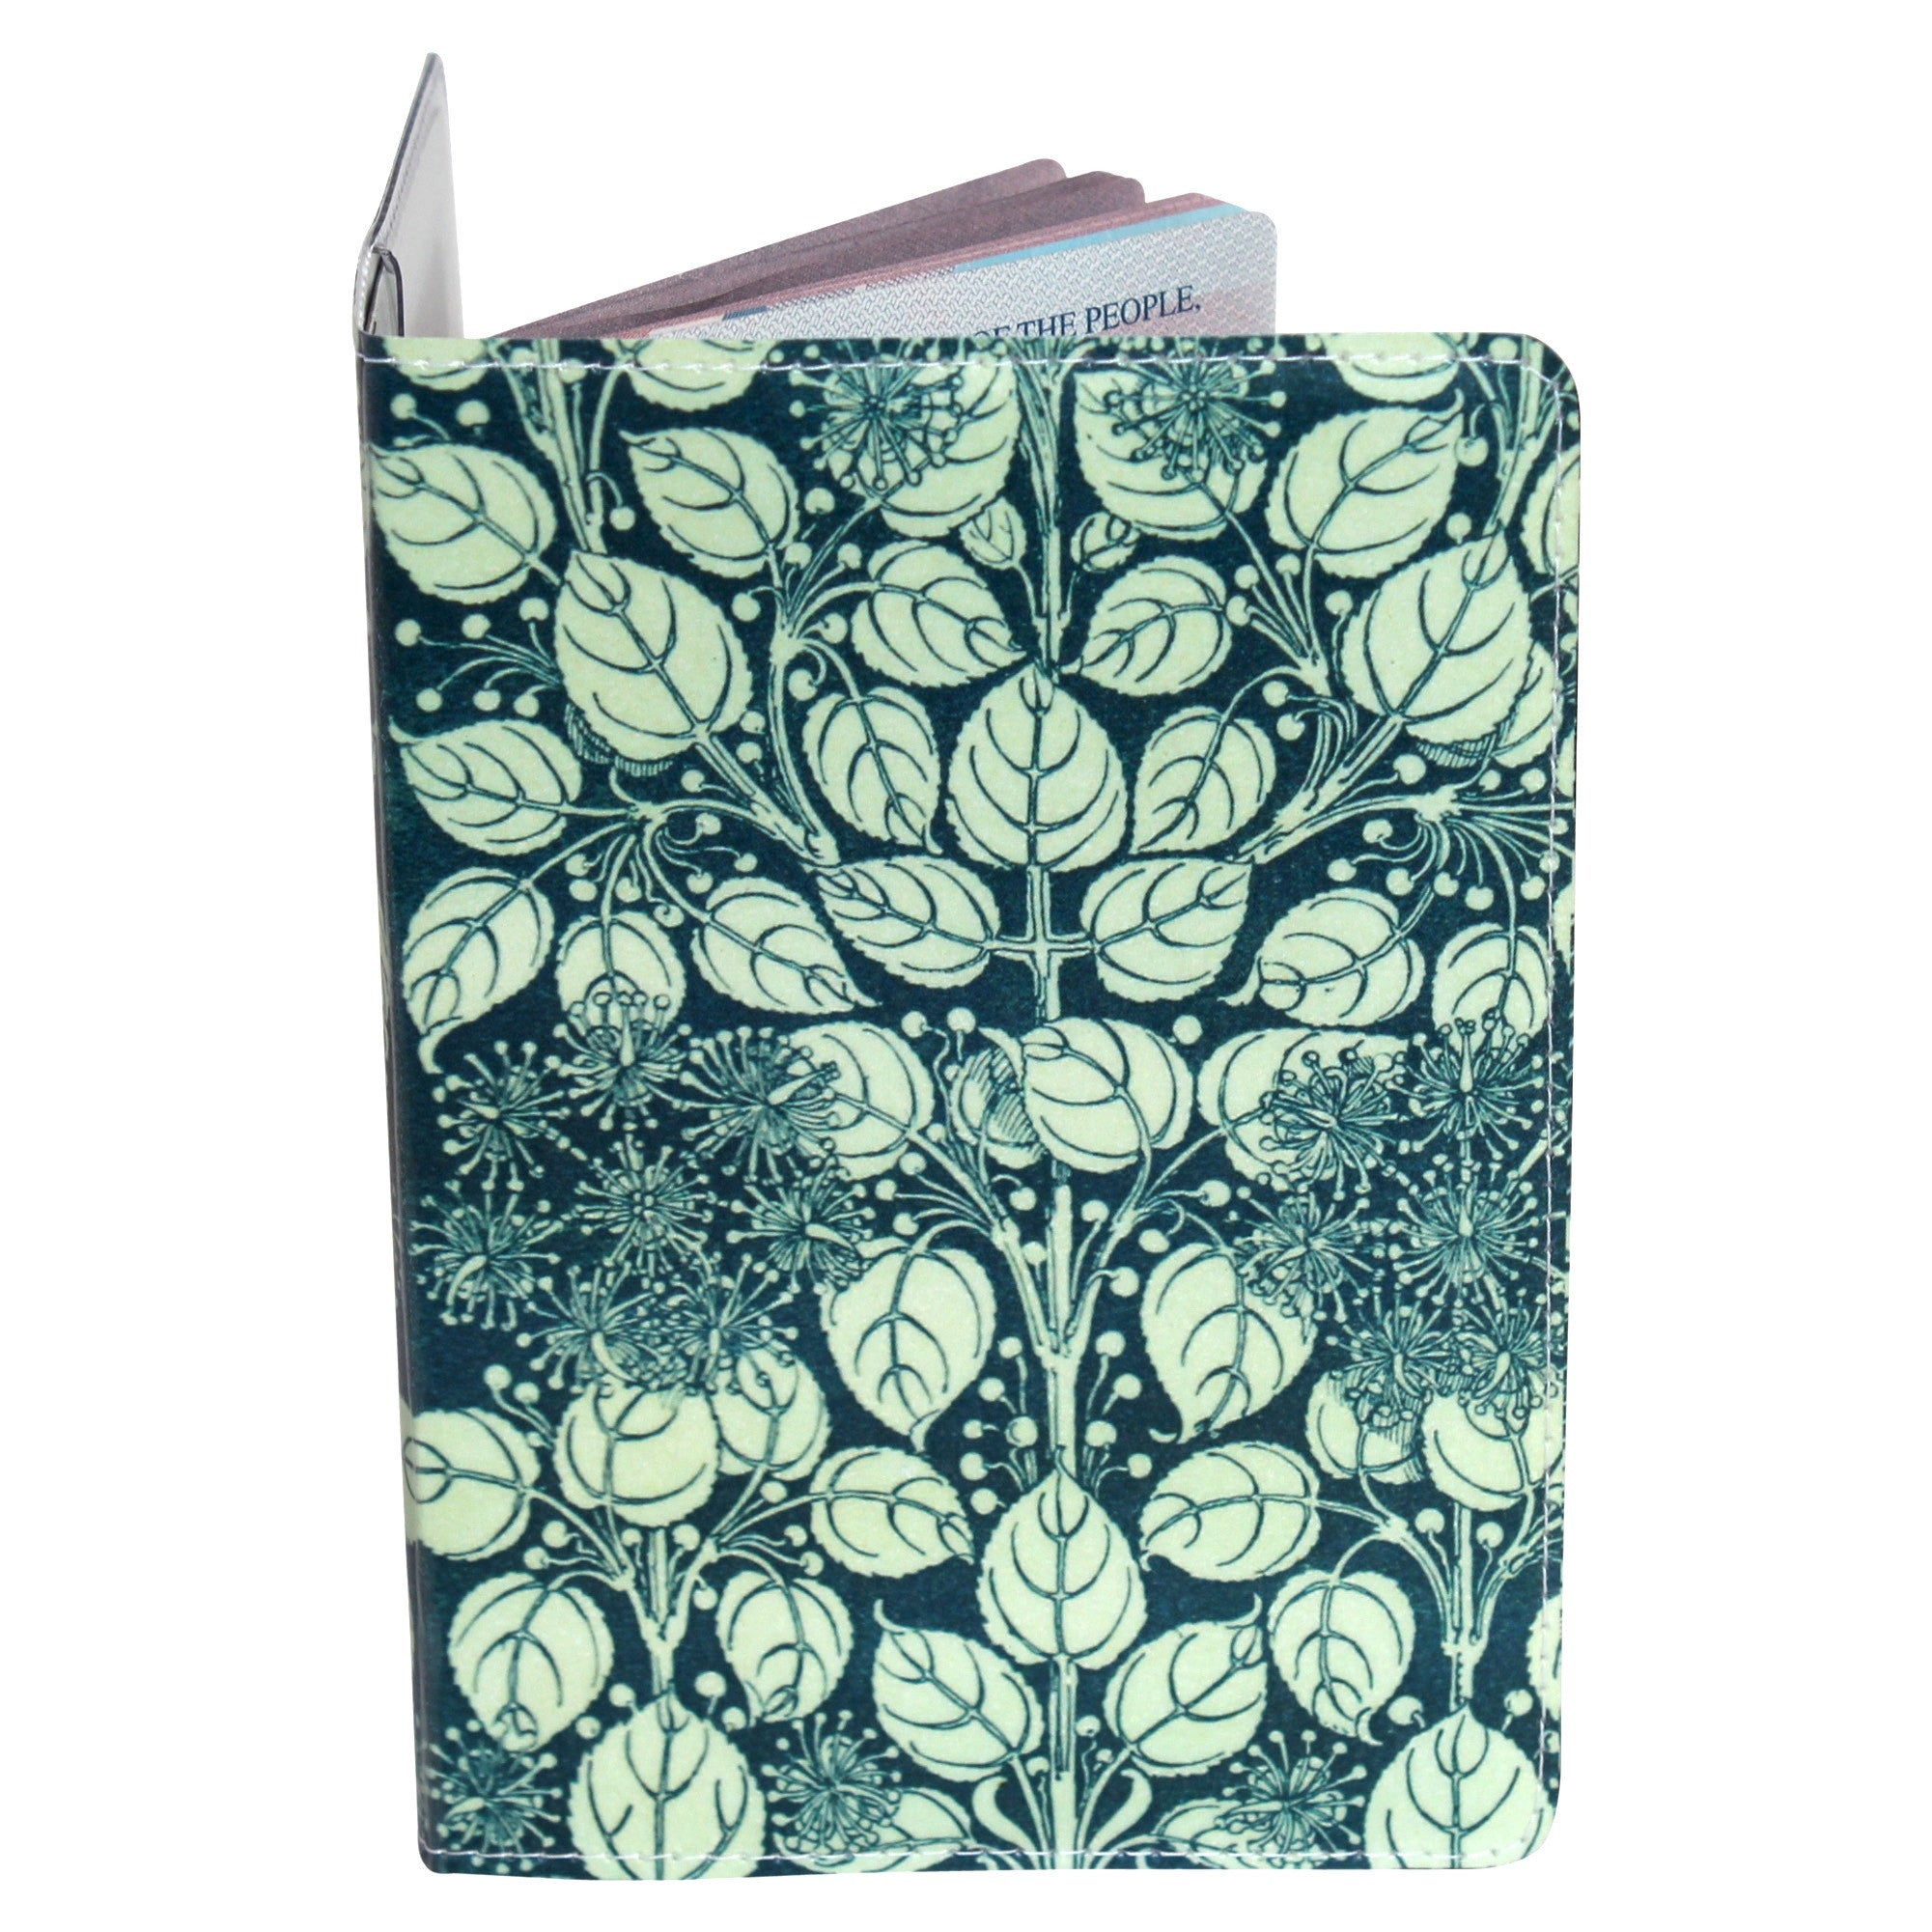 Floral Beauty Passport Holder